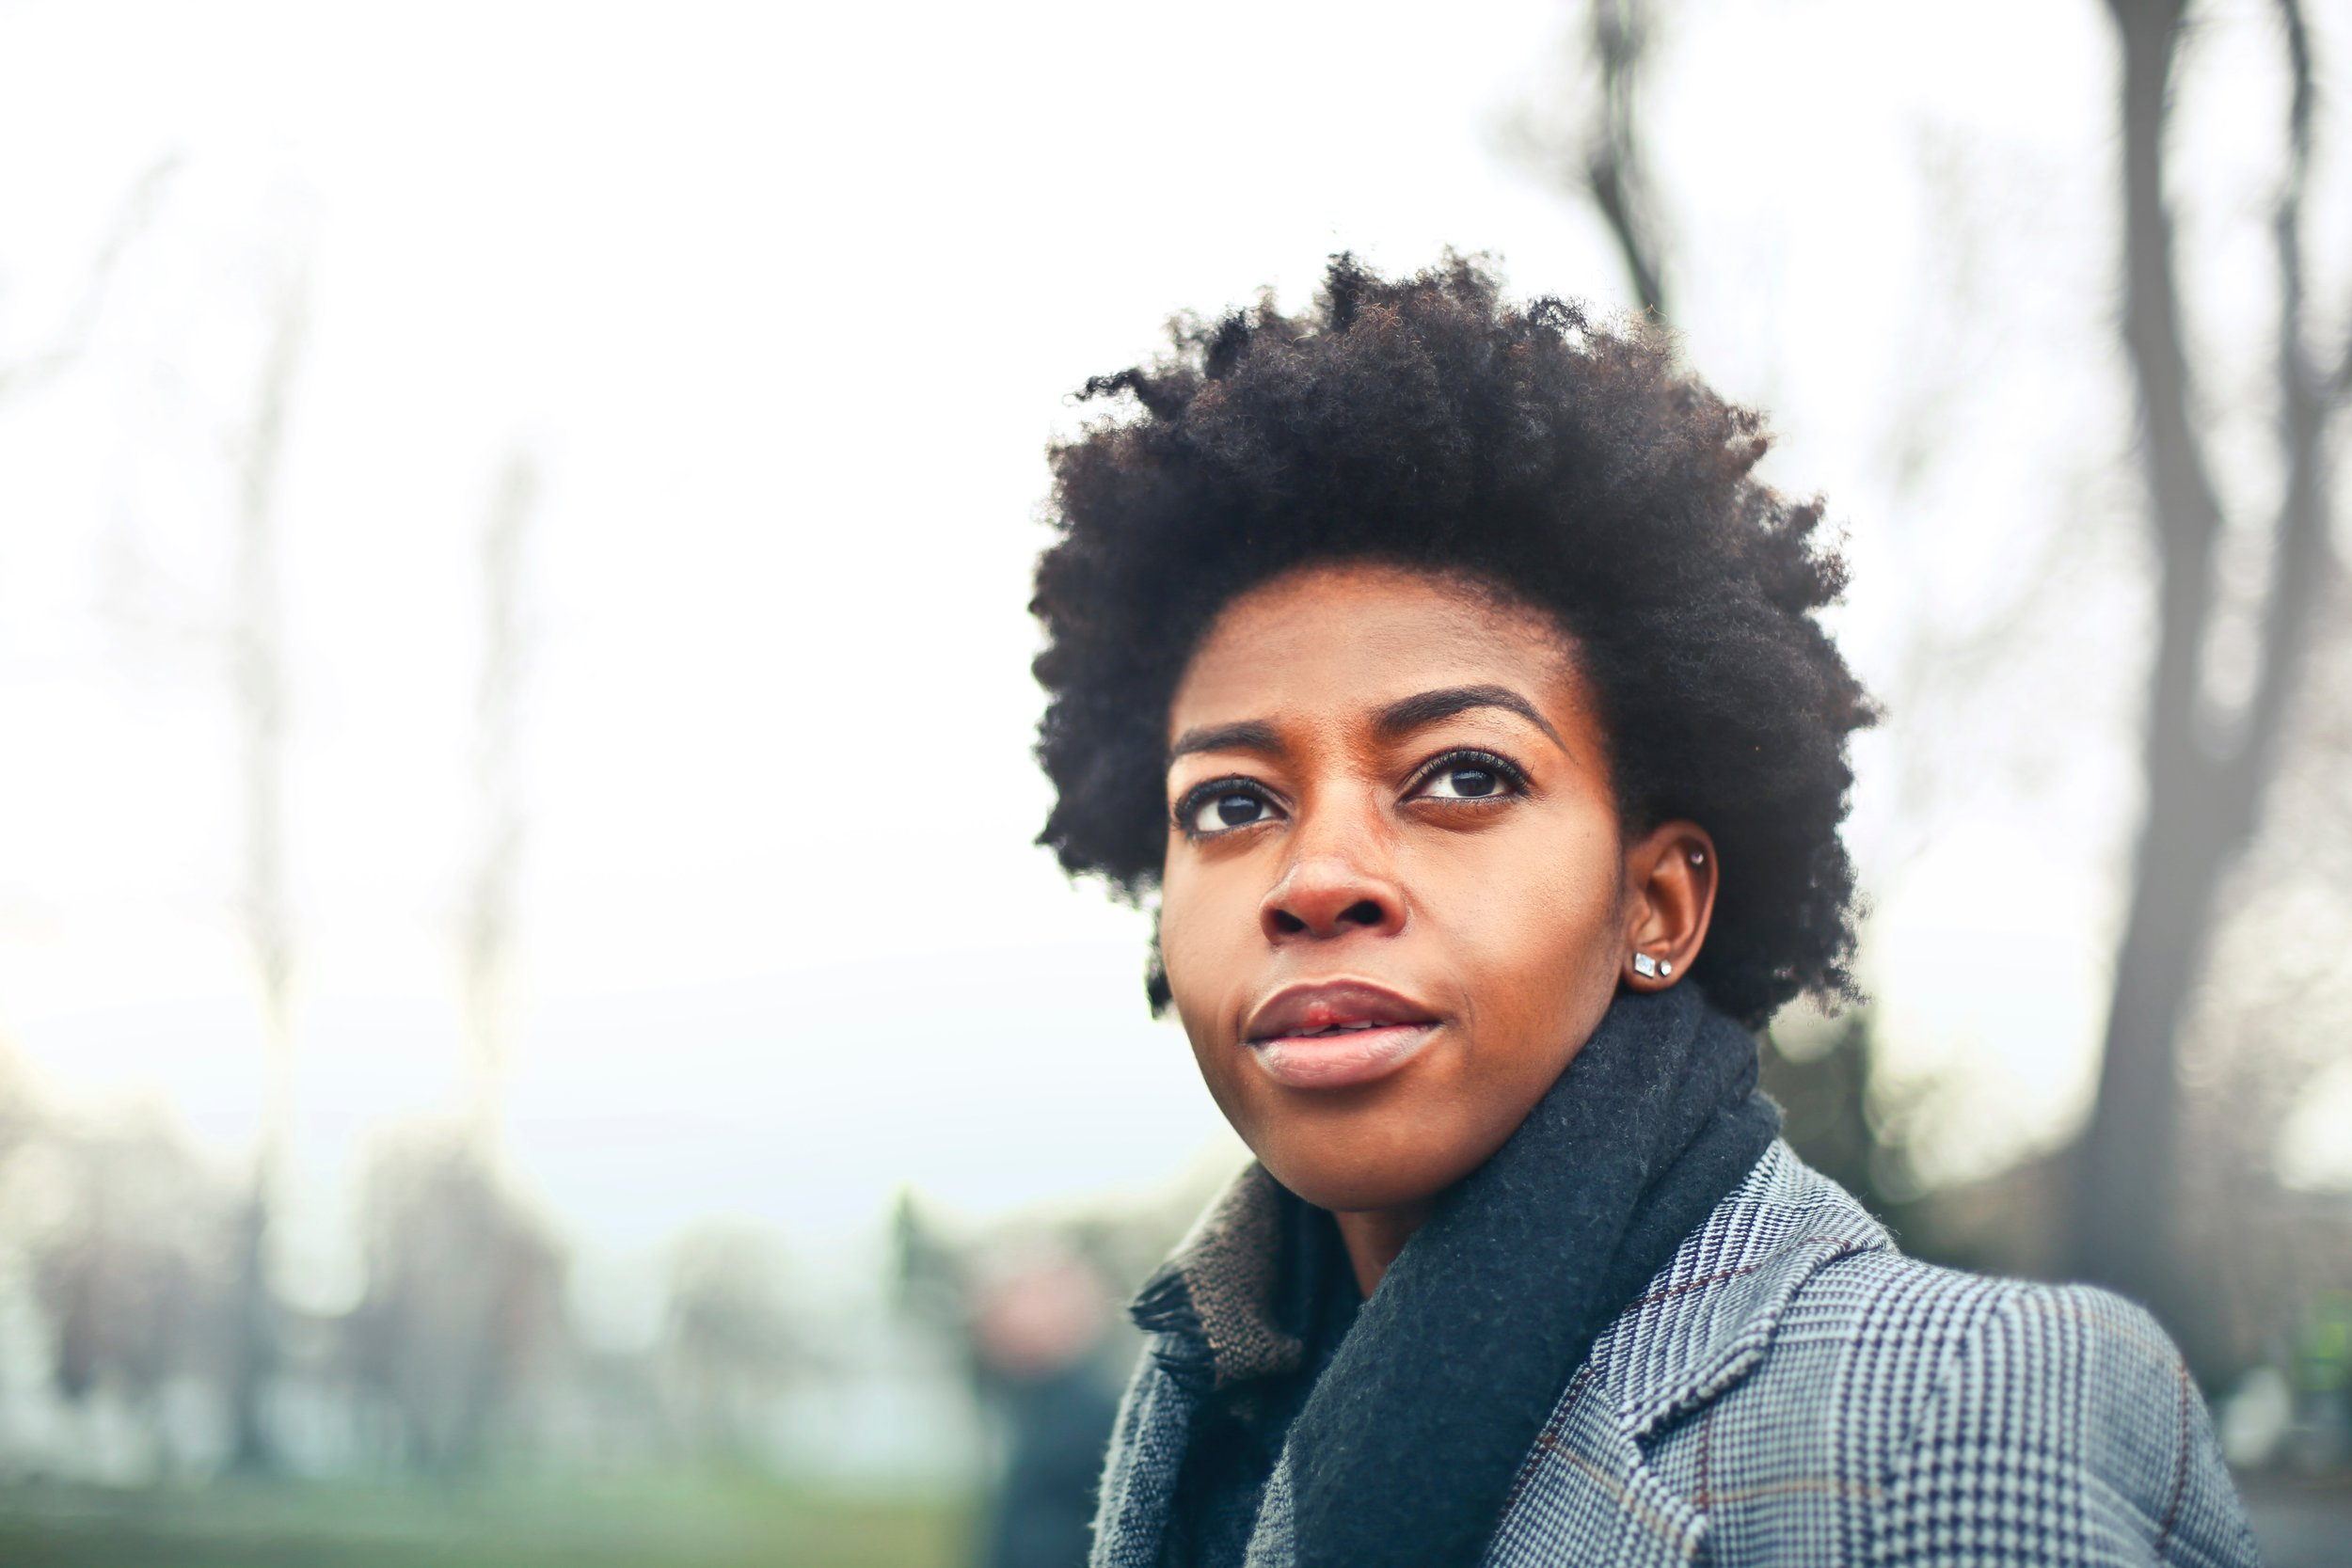 black woman portrait.jpg